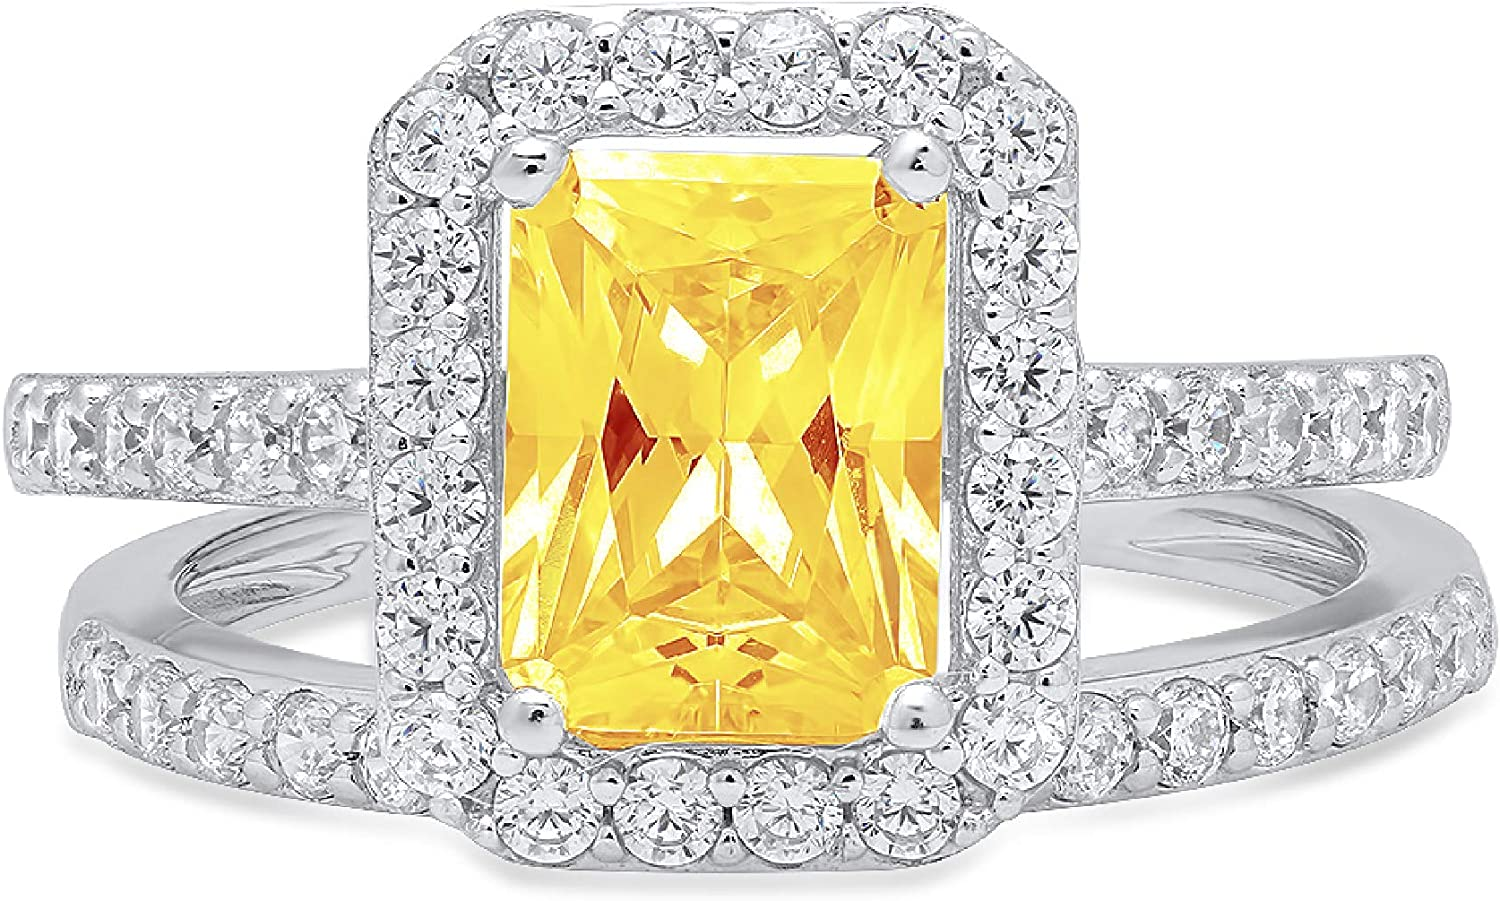 2.14ct Emerald Round Cut Pave Halo Solitaire with Accent VVS1 Ideal Natural Yellow Citrine Engagement Promise Designer Anniversary Wedding Bridal Ring band set 14k White Gold